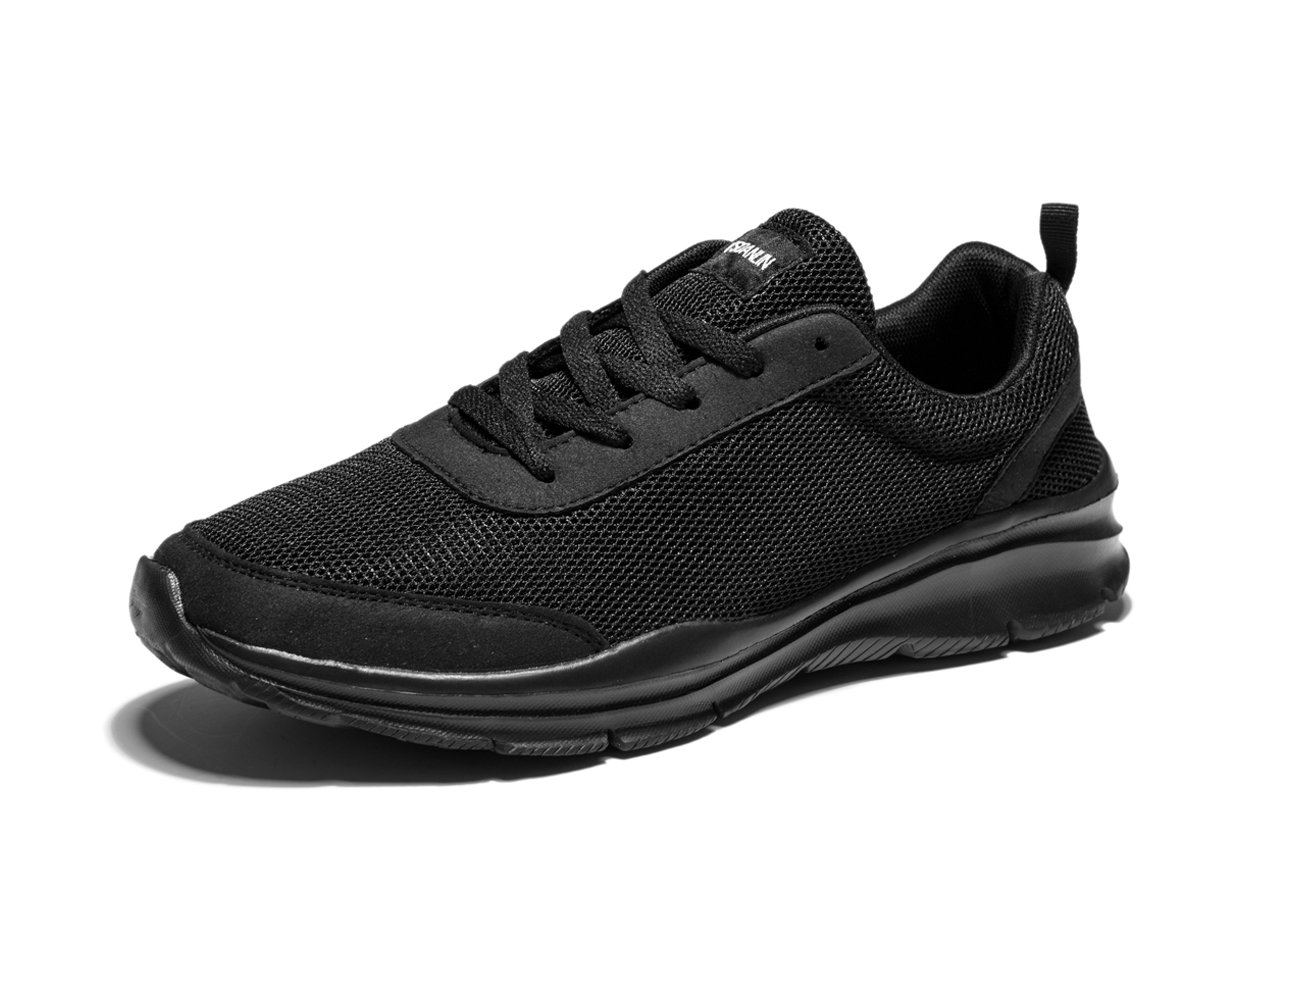 VSDANLIN Men's Light Weight Running Casual Walking Comfortable Lace-up Beach Athletic Shoes (8US/41EU Men, Black)